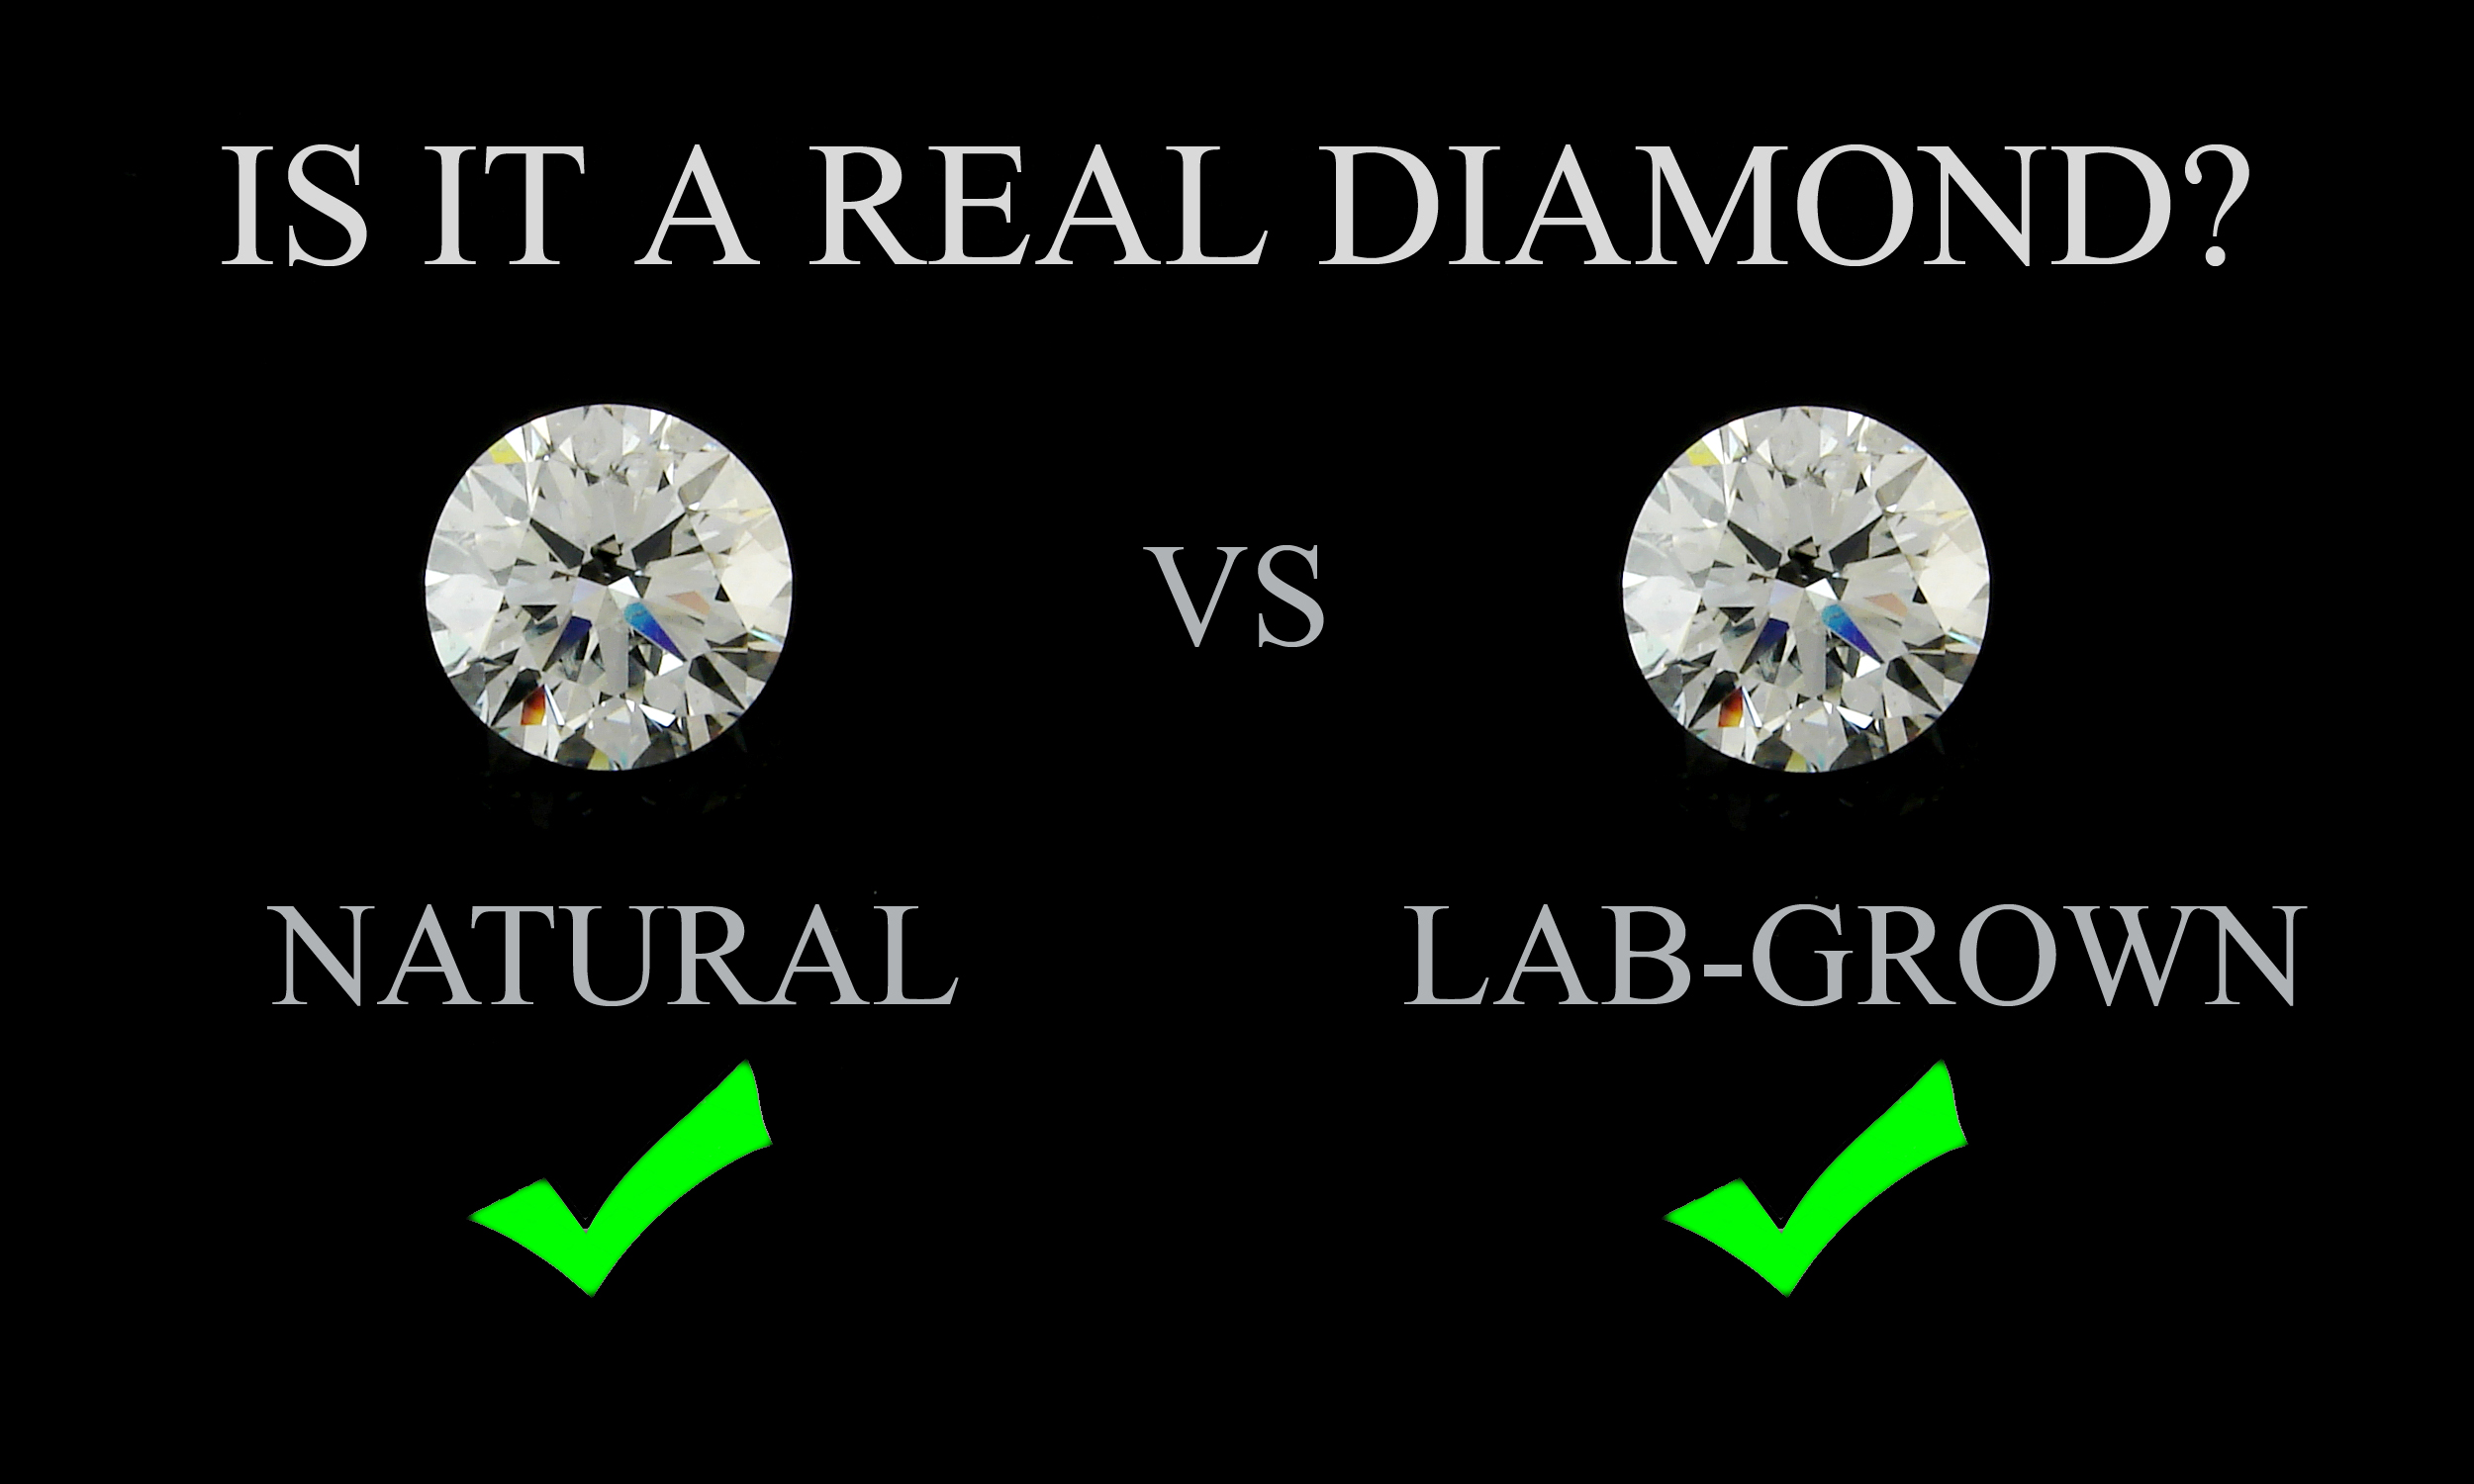 are created the made liking what of man diamond people diamonds why more features lab